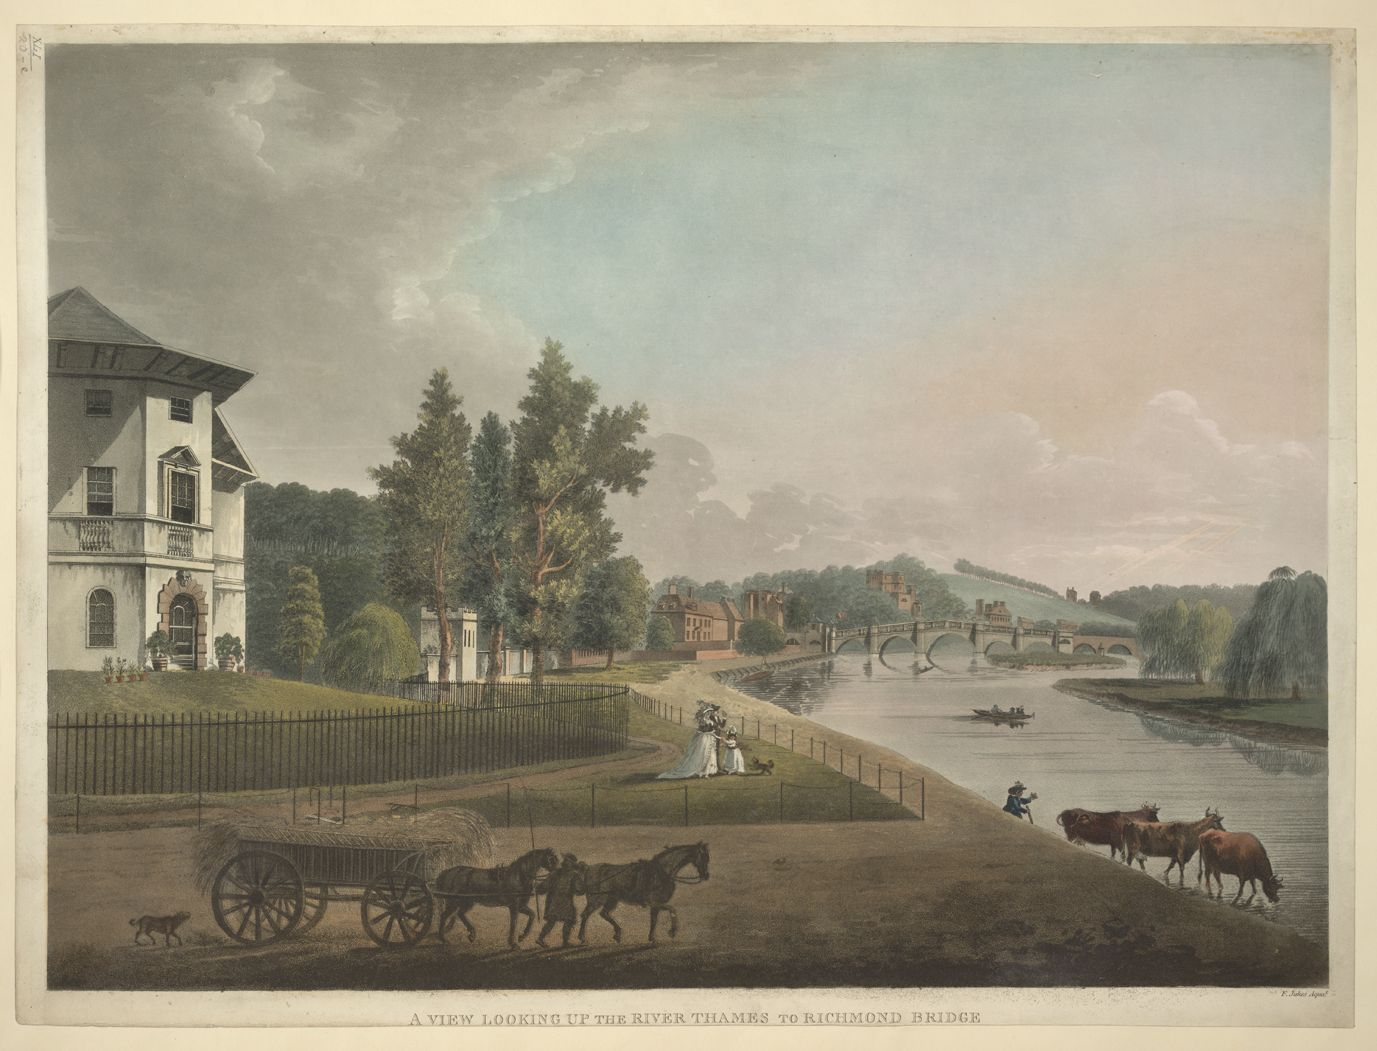 Horses and a cart containing hay in the left-hand corner; houses and gardens along the bank of the River Thames; cattle by the water; Richmond Bridge in the distance; trees throughout the scene; A VIEW LOOKING UP THE THAMES TO RICHMOND BRIDGE. / F. Jukes Aquat. Francis Jukes, 1745-1812, printmaker, publisher. [London] : [Published June 4th 1795 by F. Jukes, No. 10 Howland St.], [June 4 1795]